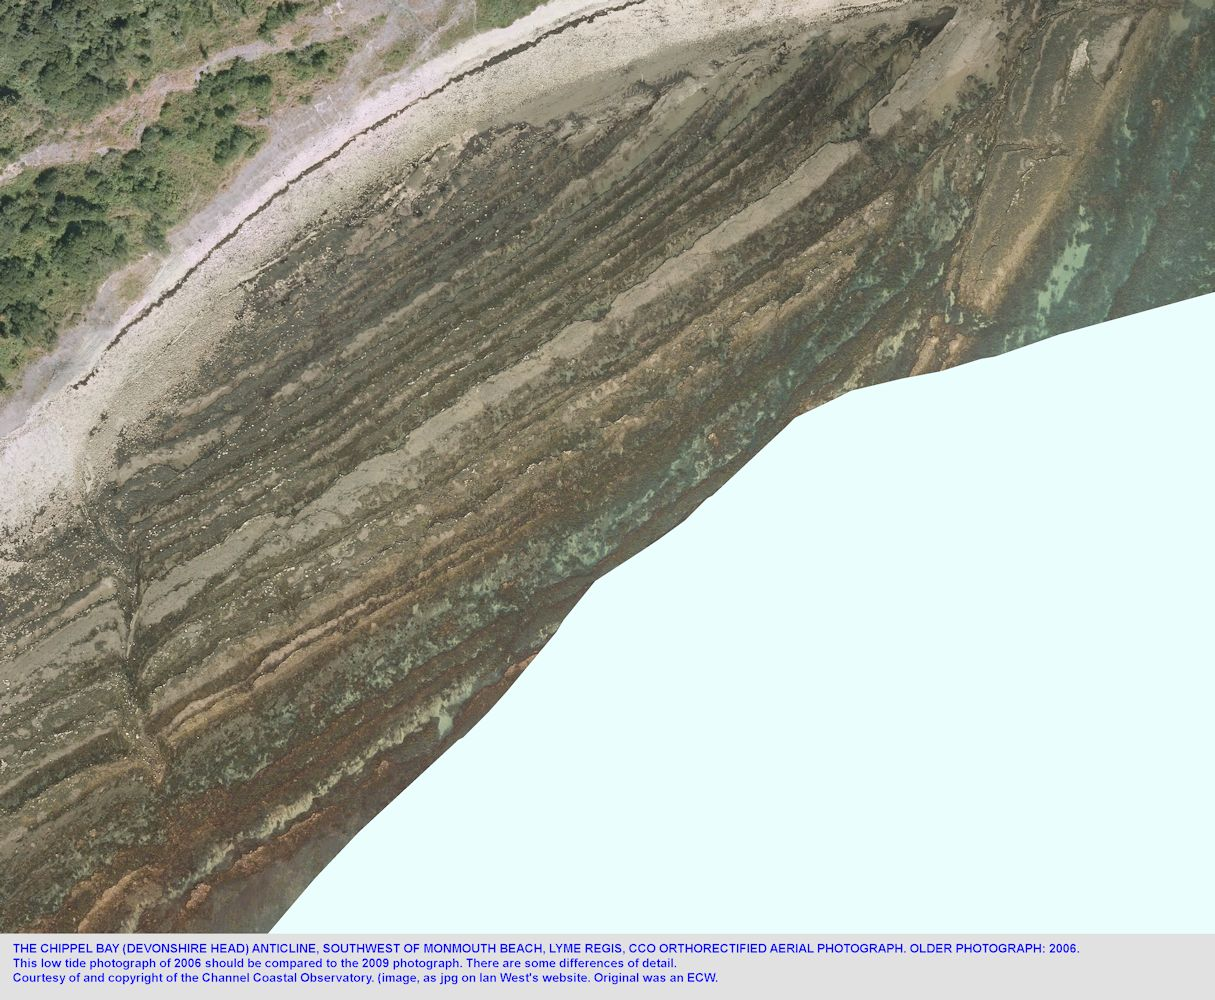 CCO aerial photograph showing details of the Chippel Bay (Devonshire Head) Anticline, near Monmouth Beach, Lyme Regis, Dorset, in 2006